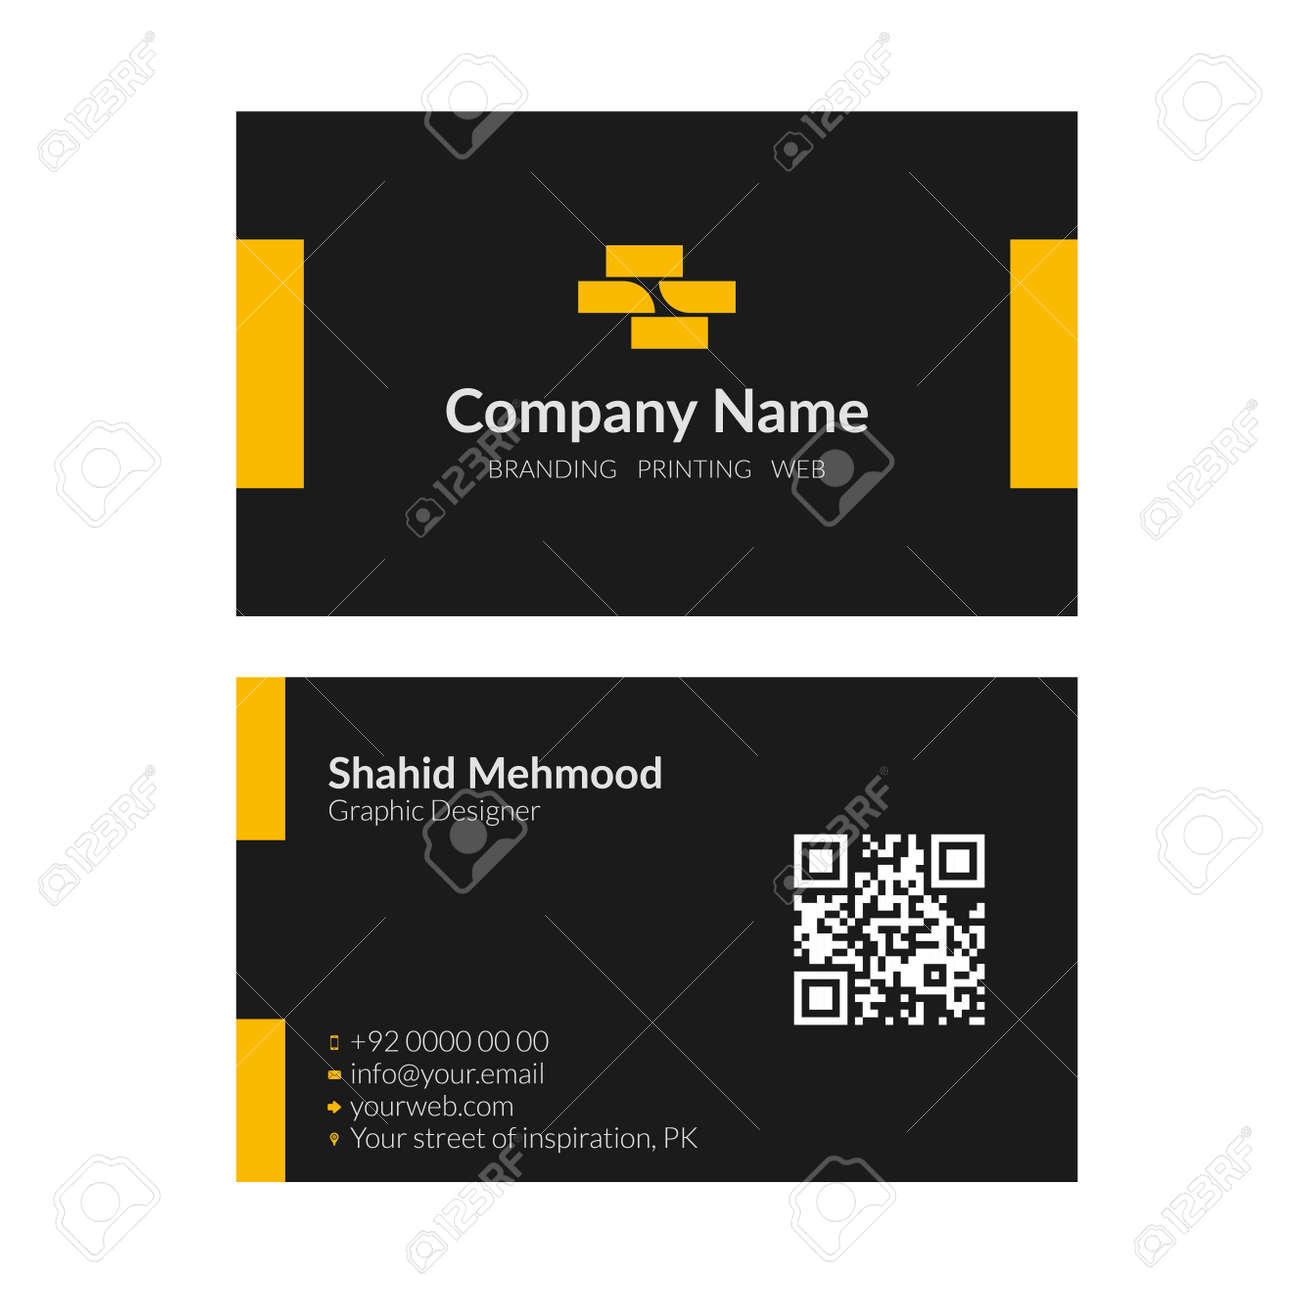 Modern simple creative elegant business card template 06 royalty modern simple creative elegant business card template 06 stock vector 38754923 reheart Choice Image